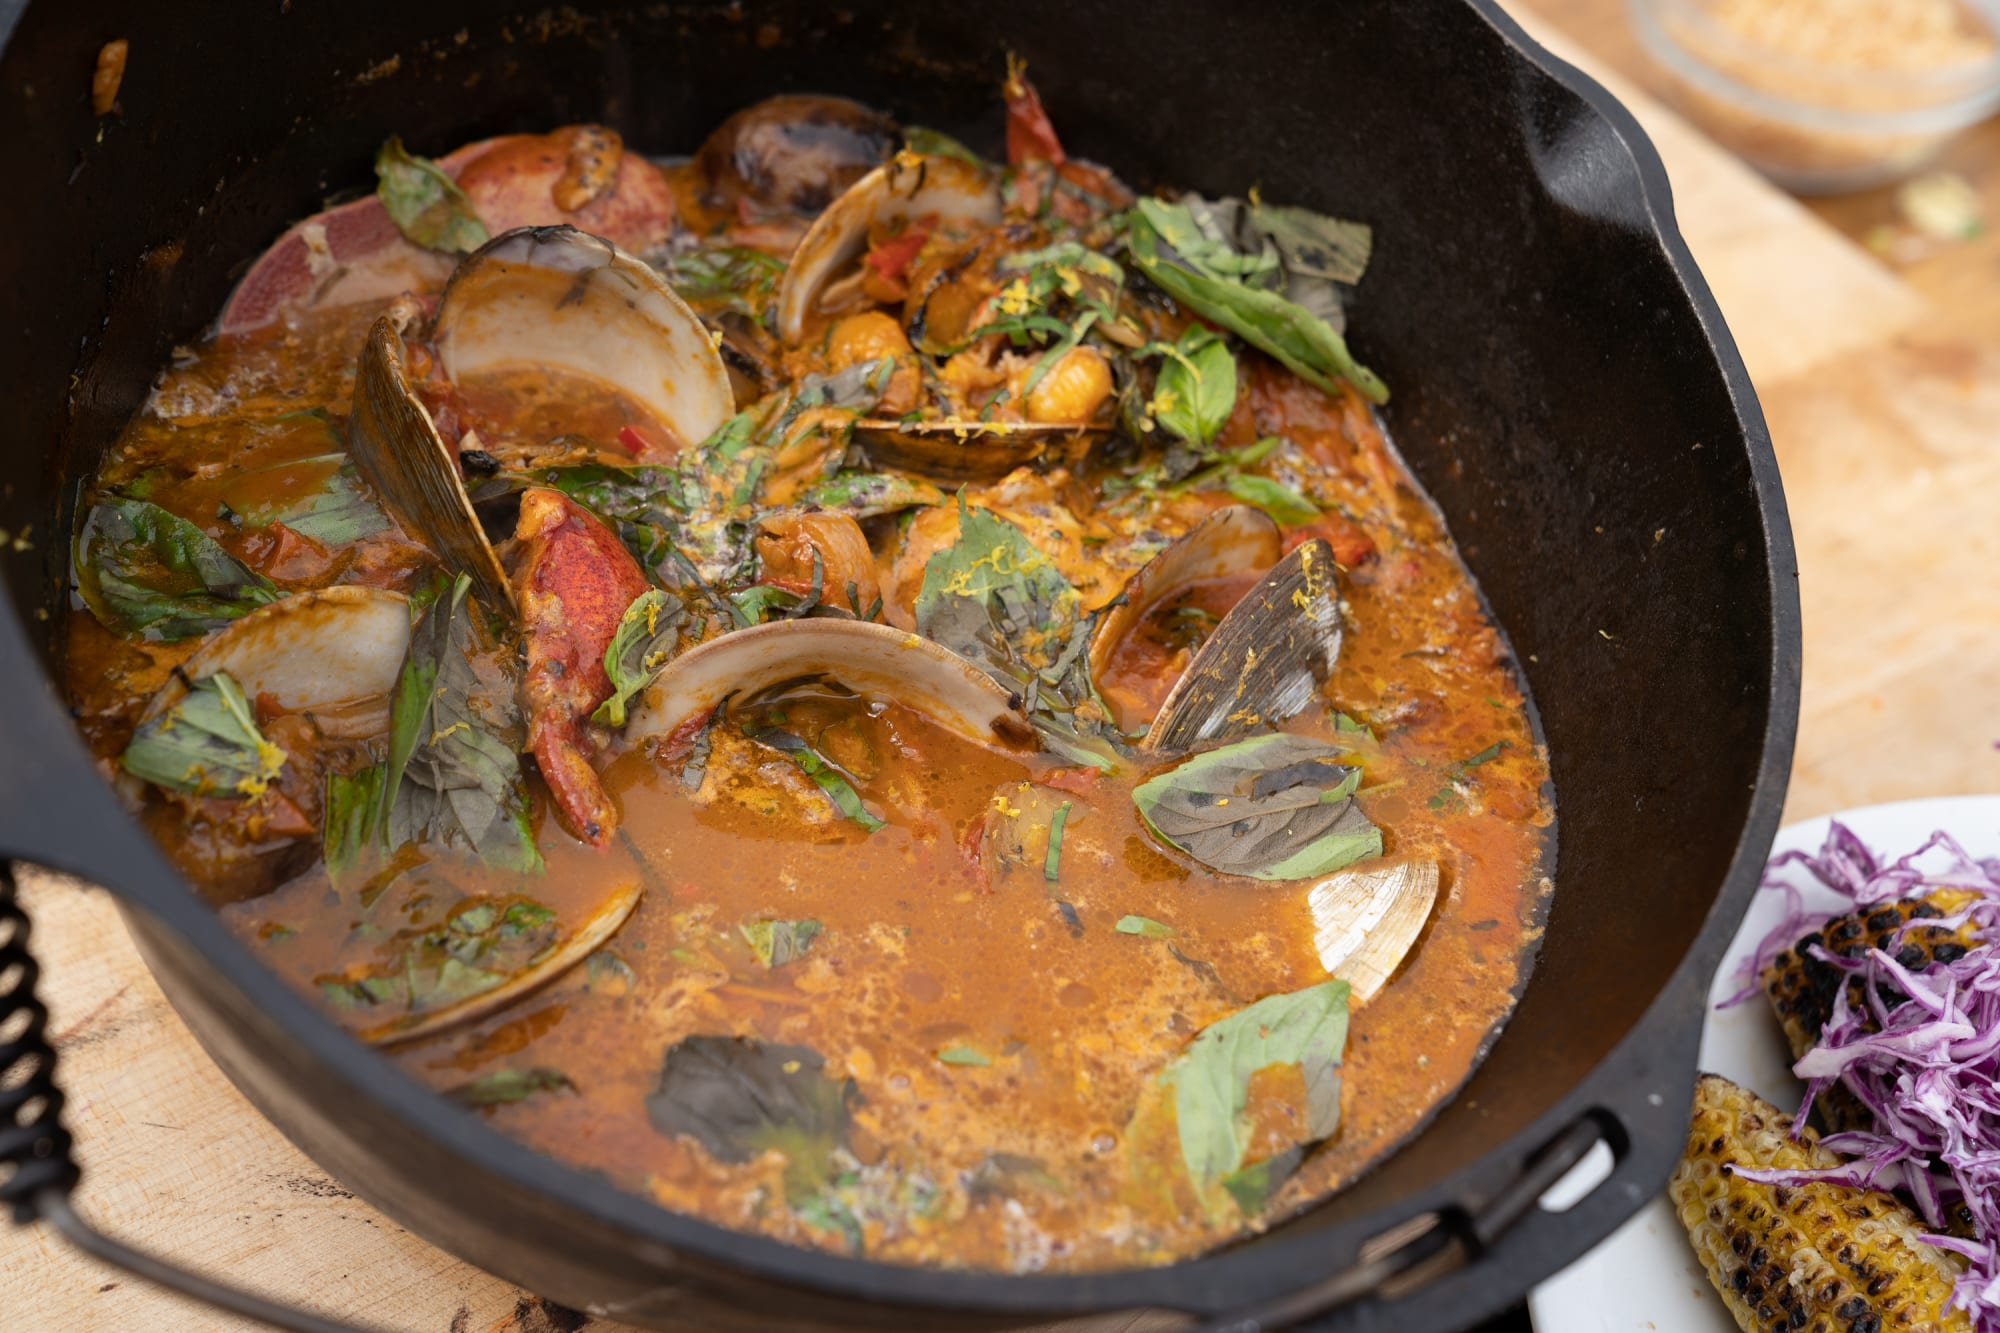 Gordon Ramsay adds a new flavor to this classic Bouillabaisse recipe